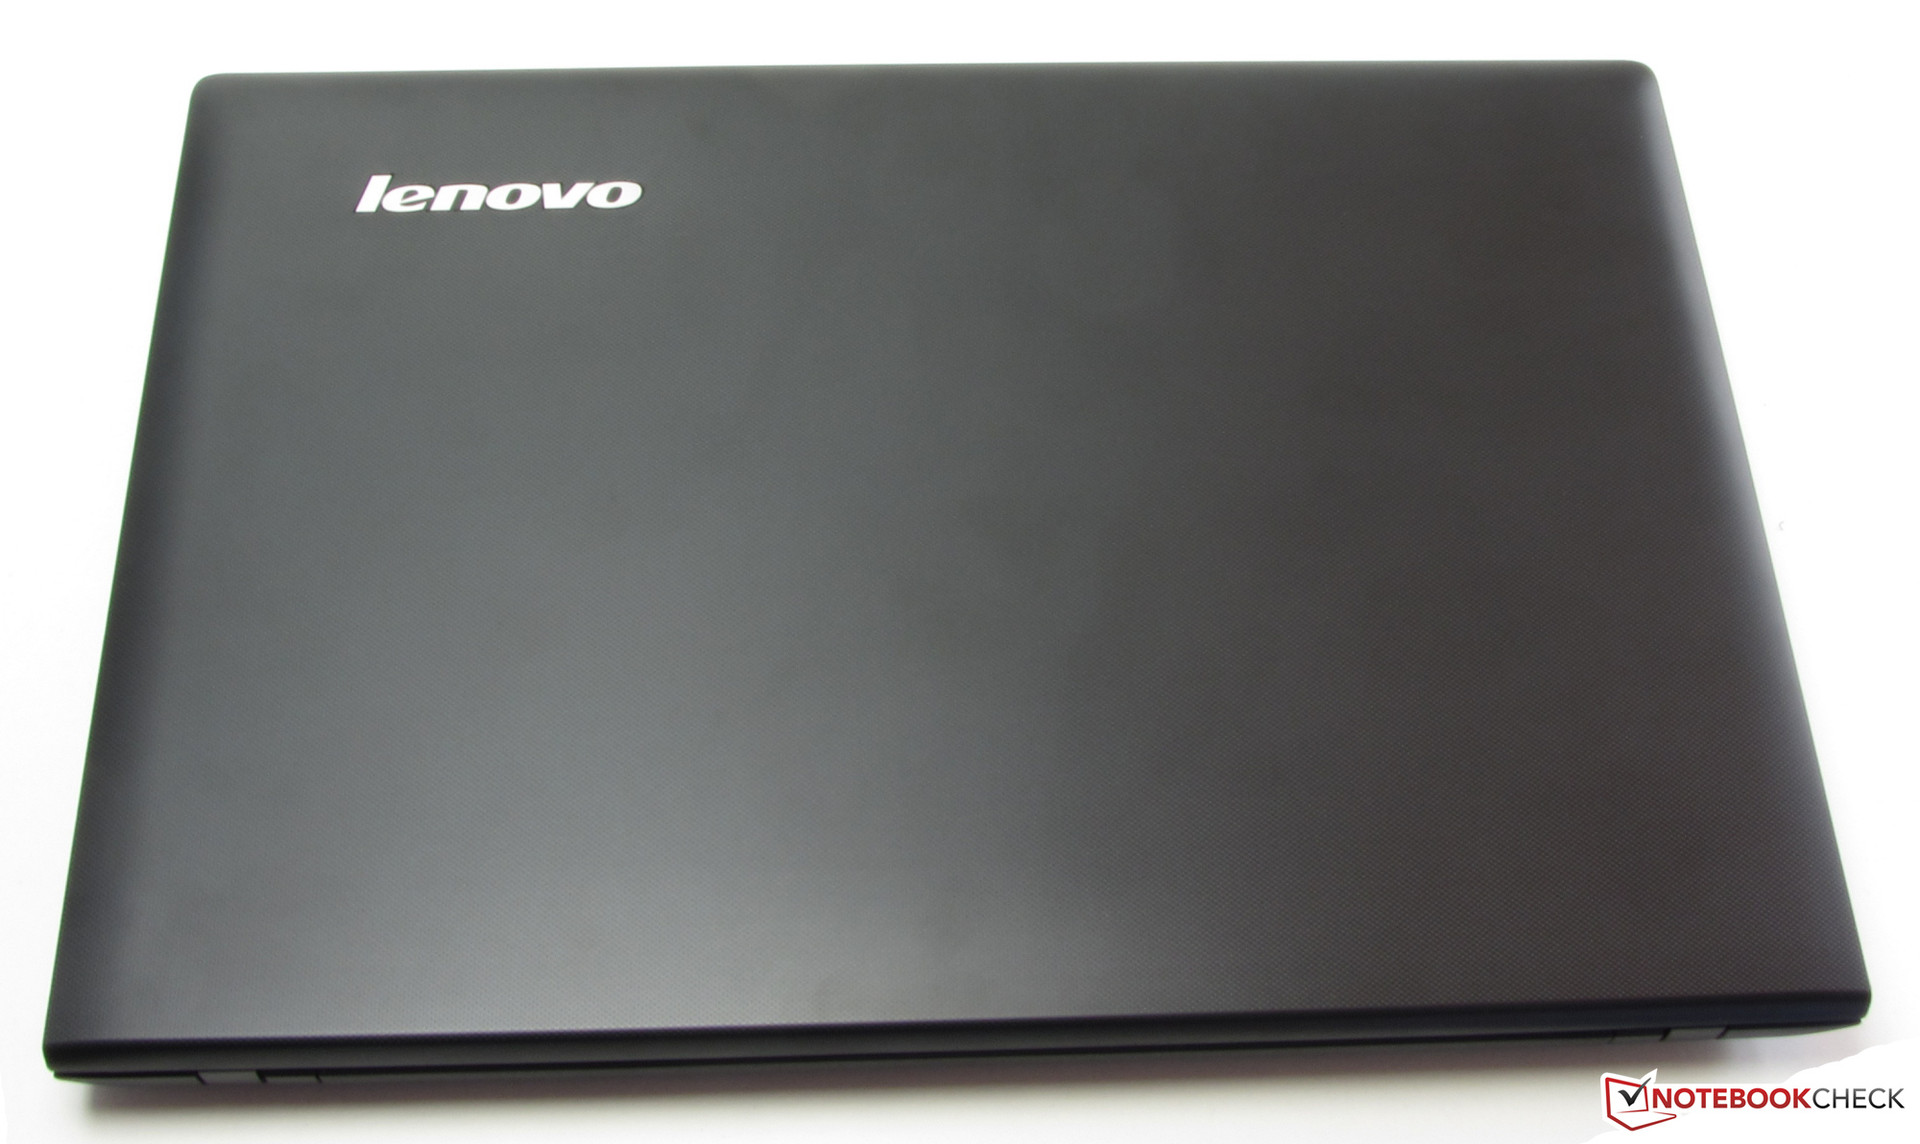 Review Lenovo G500s-59367693 Notebook - NotebookCheck net Reviews